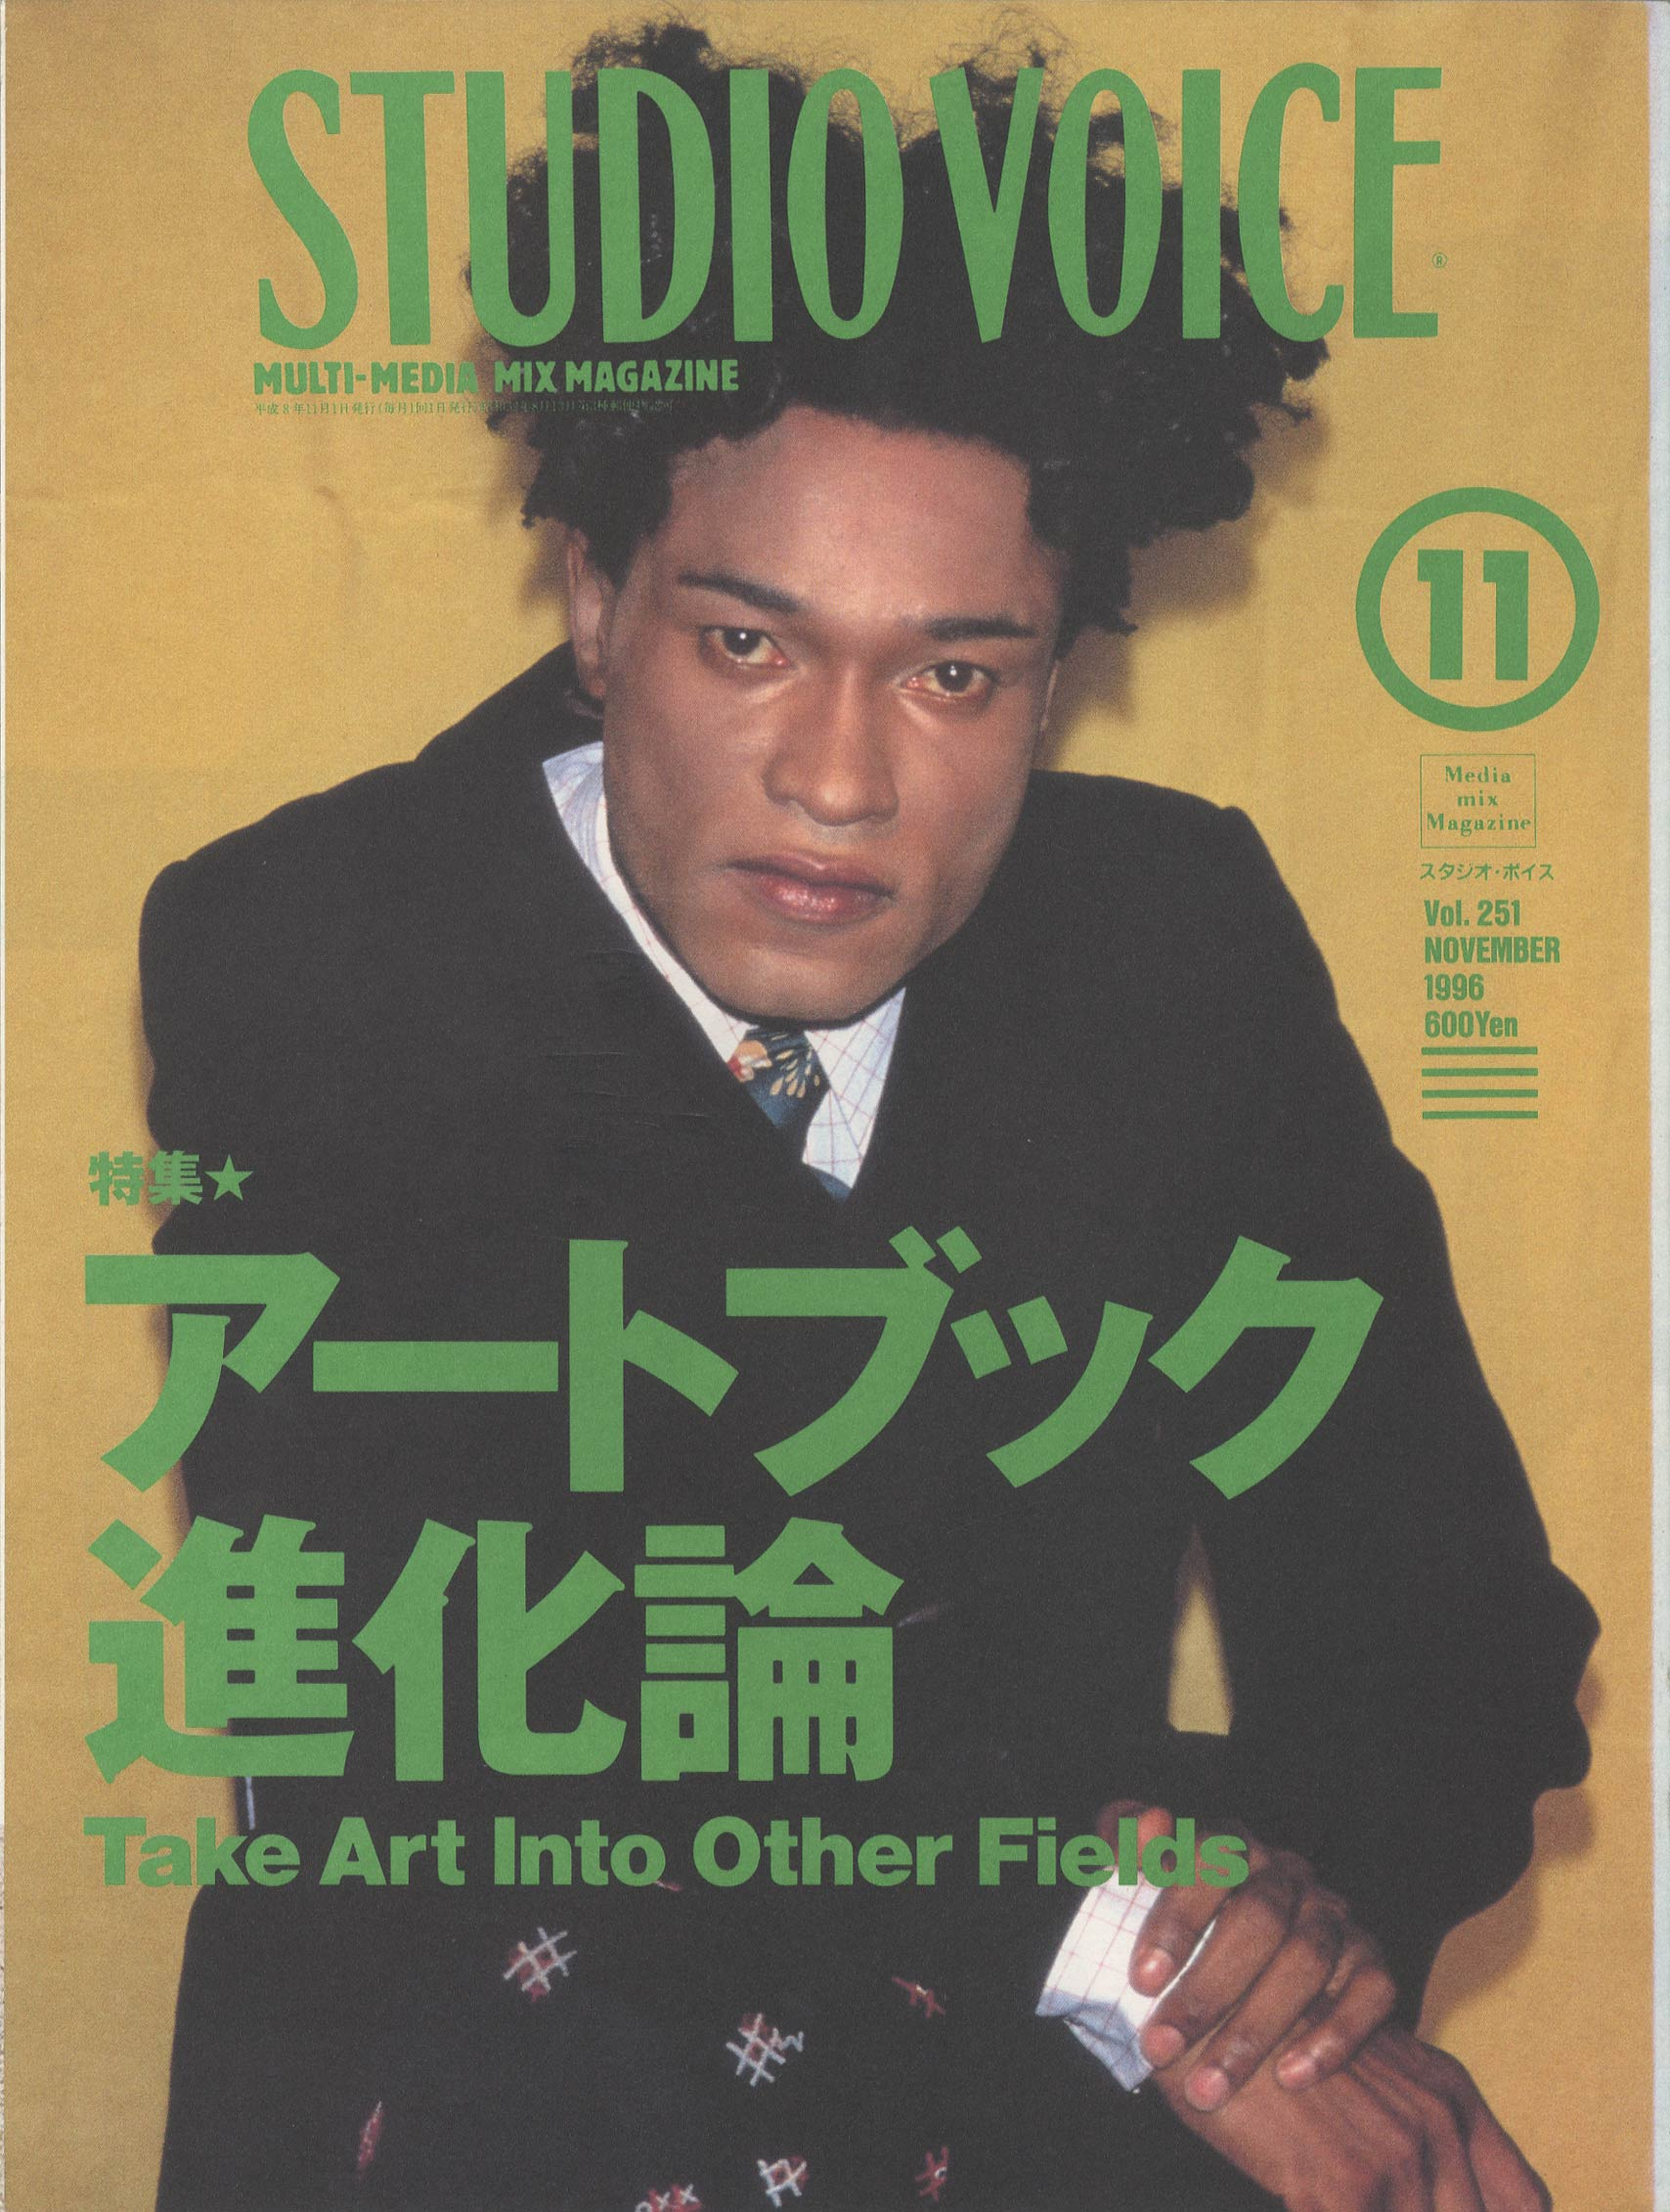 STUDIO VOICE MULTI-MEDIA MIX MAGAZINE/スタジオ・ボイス 1996年11月号 Vol.251